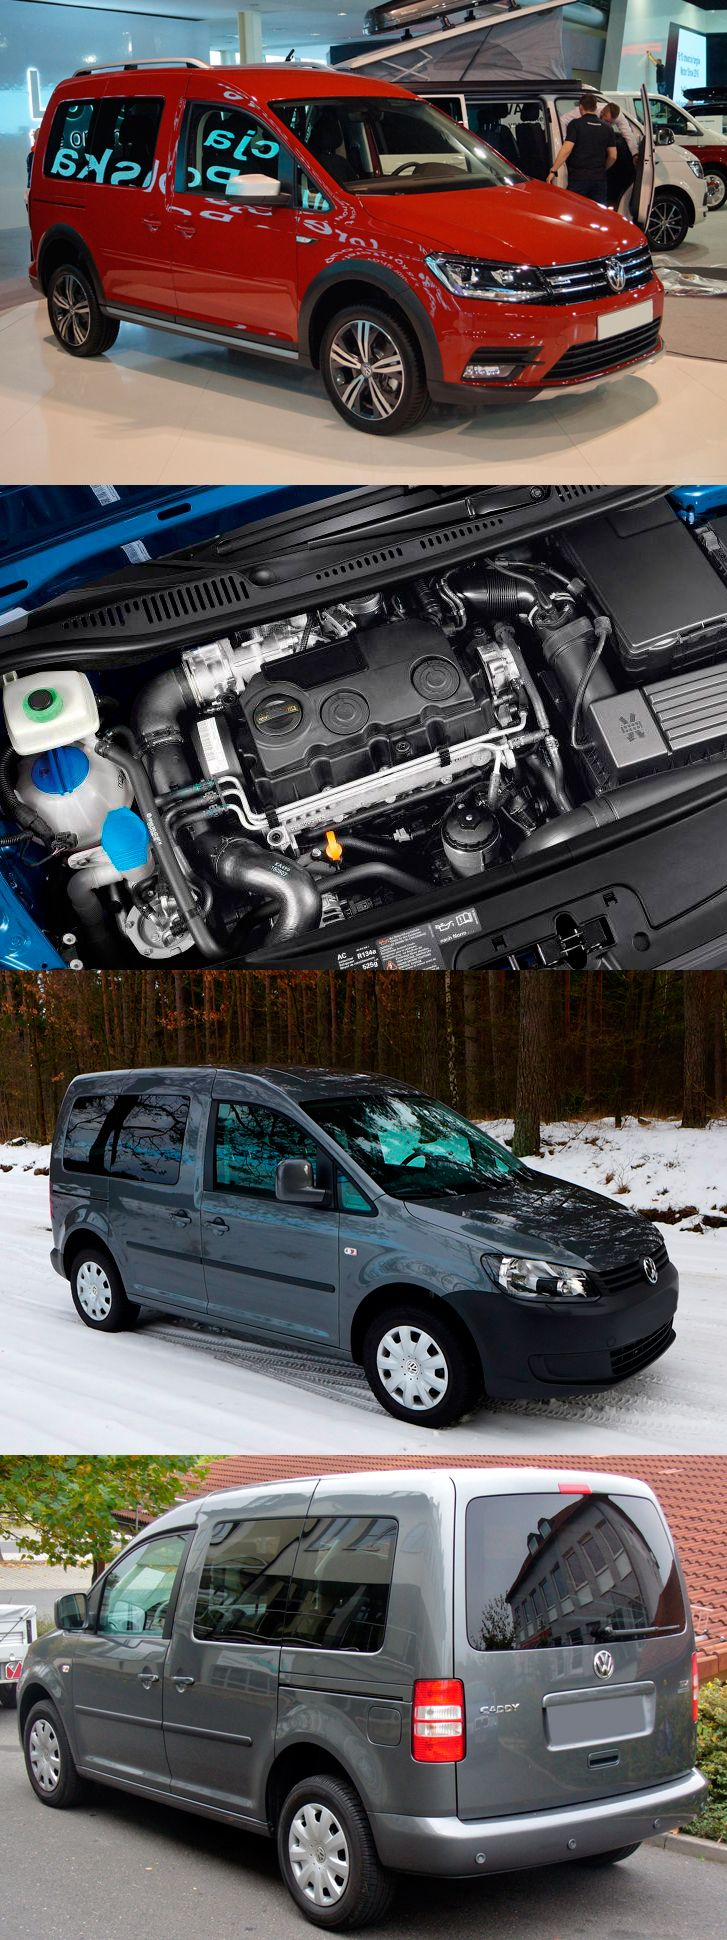 A practical and comfortable mini_van volkswagen caddy read more http